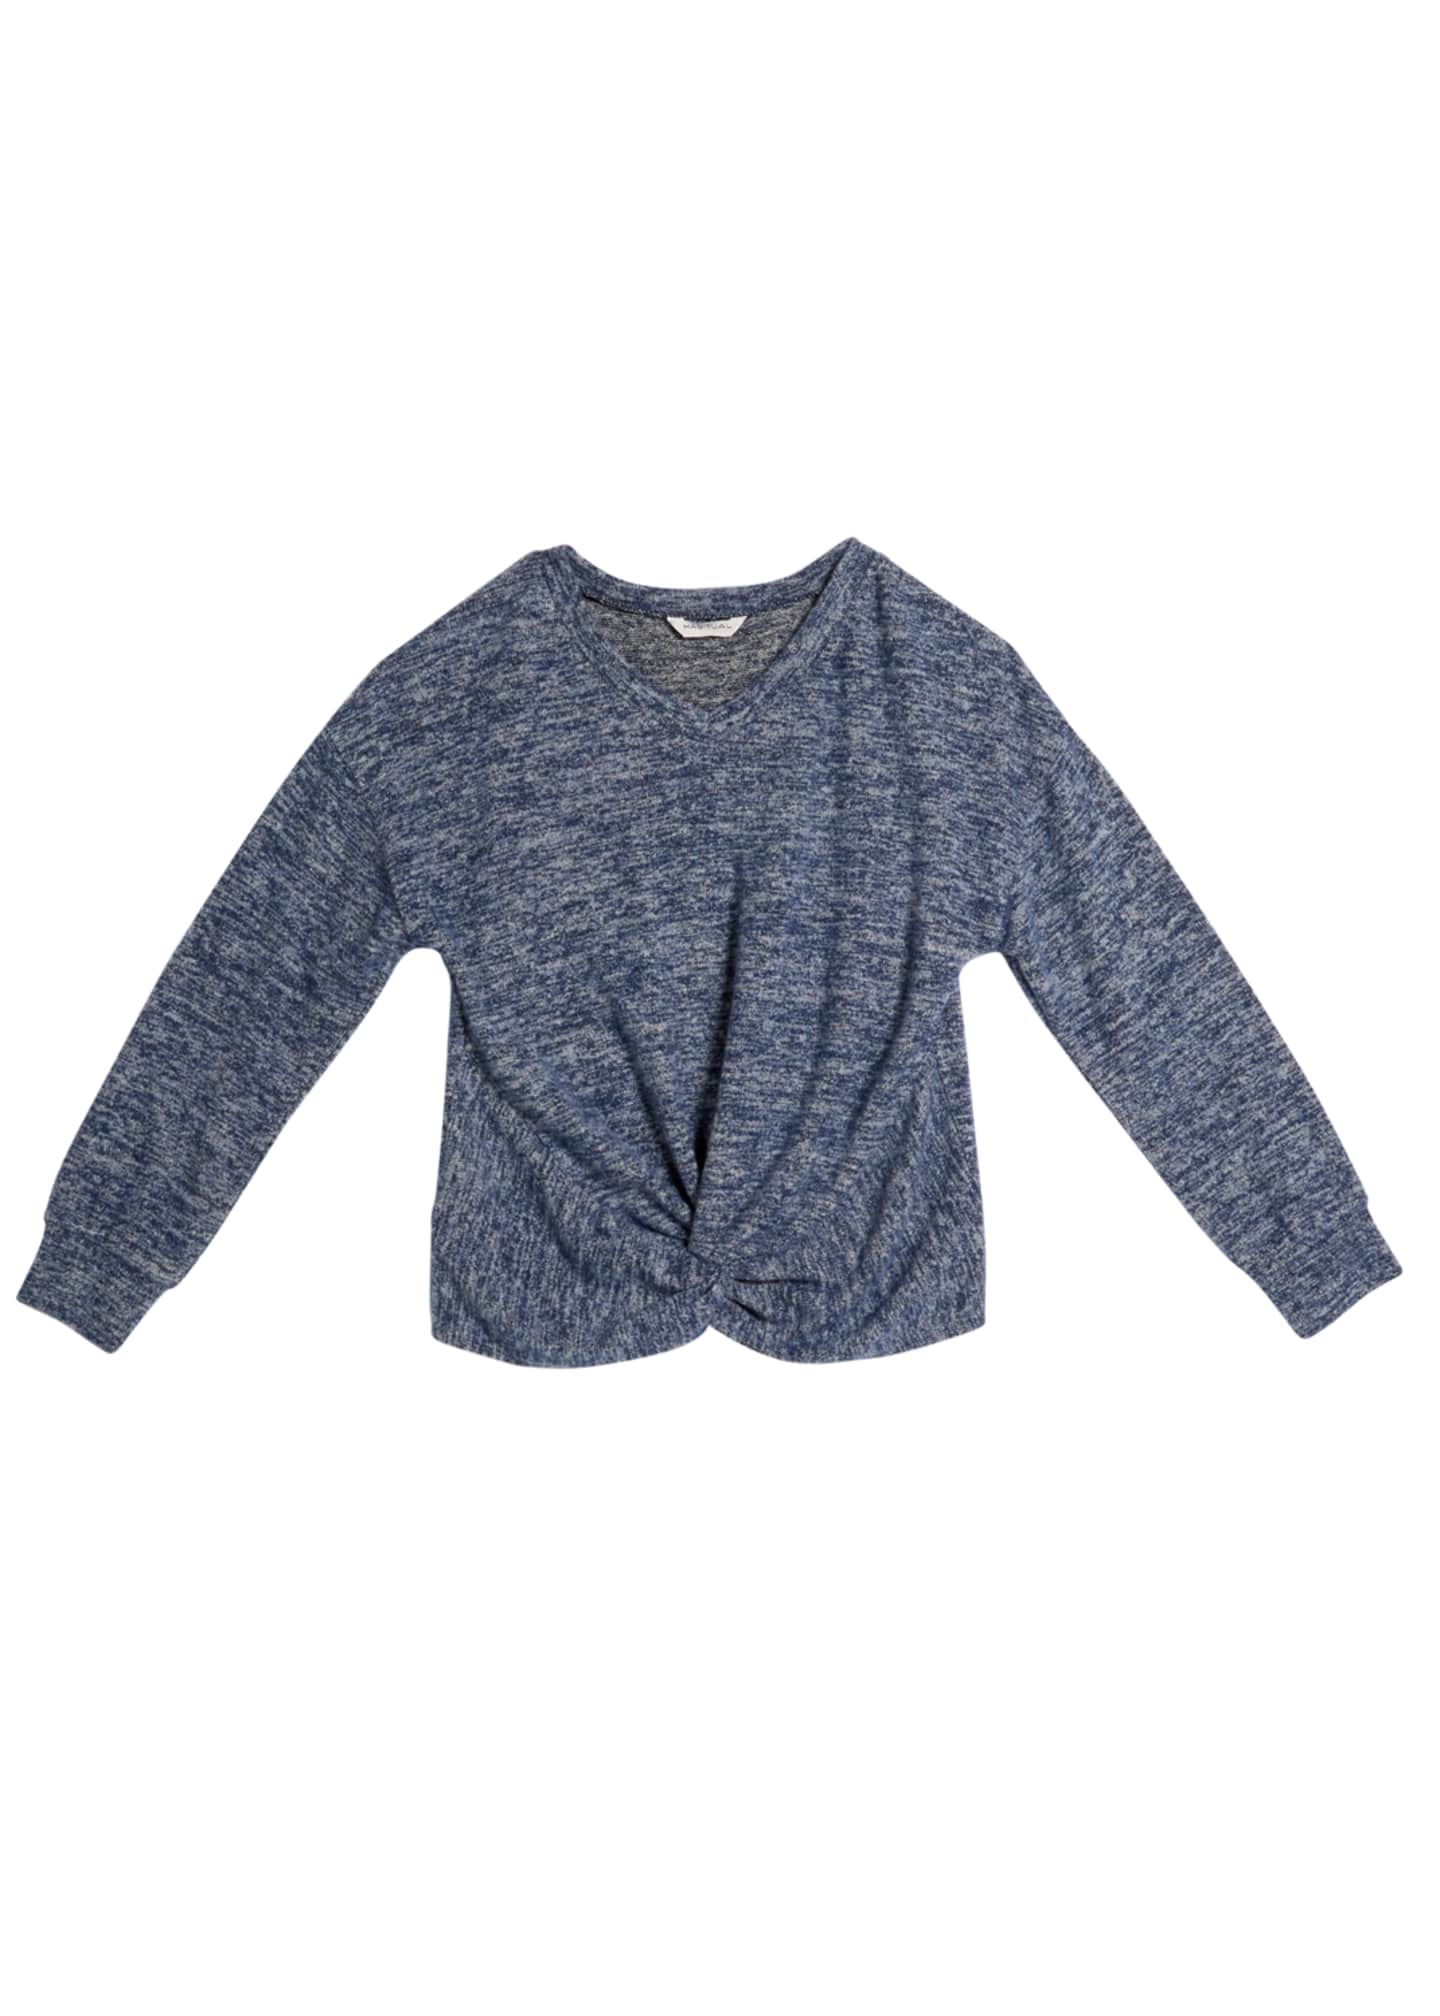 Habitual Kylie Hatchi Knit Twisted Top, Size 7-14